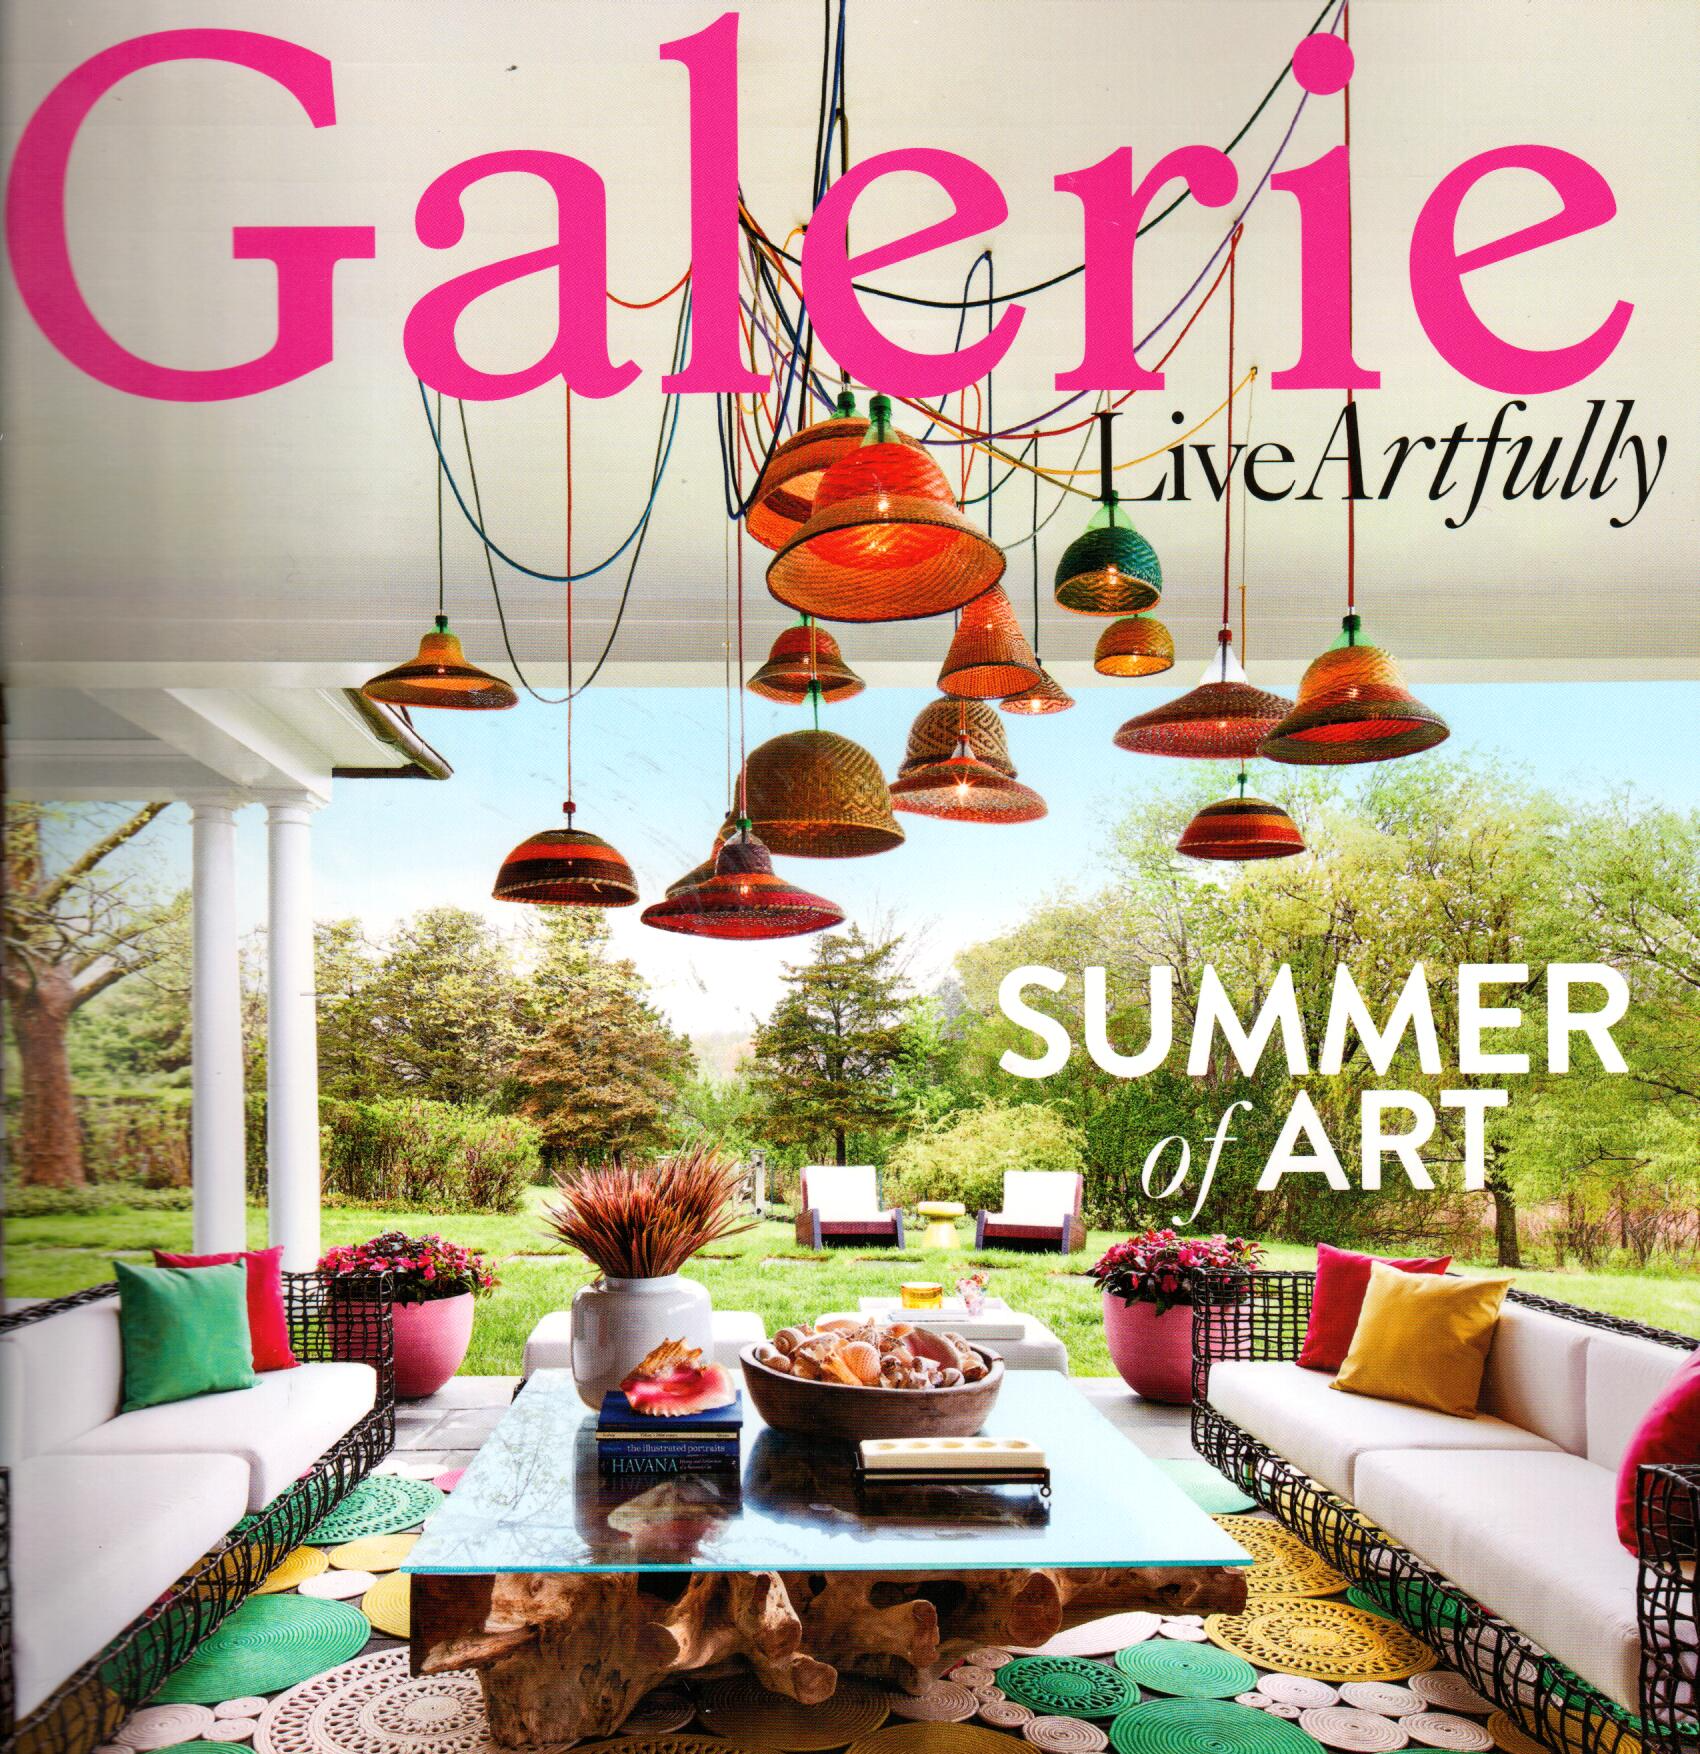 Galerie_Summer.png